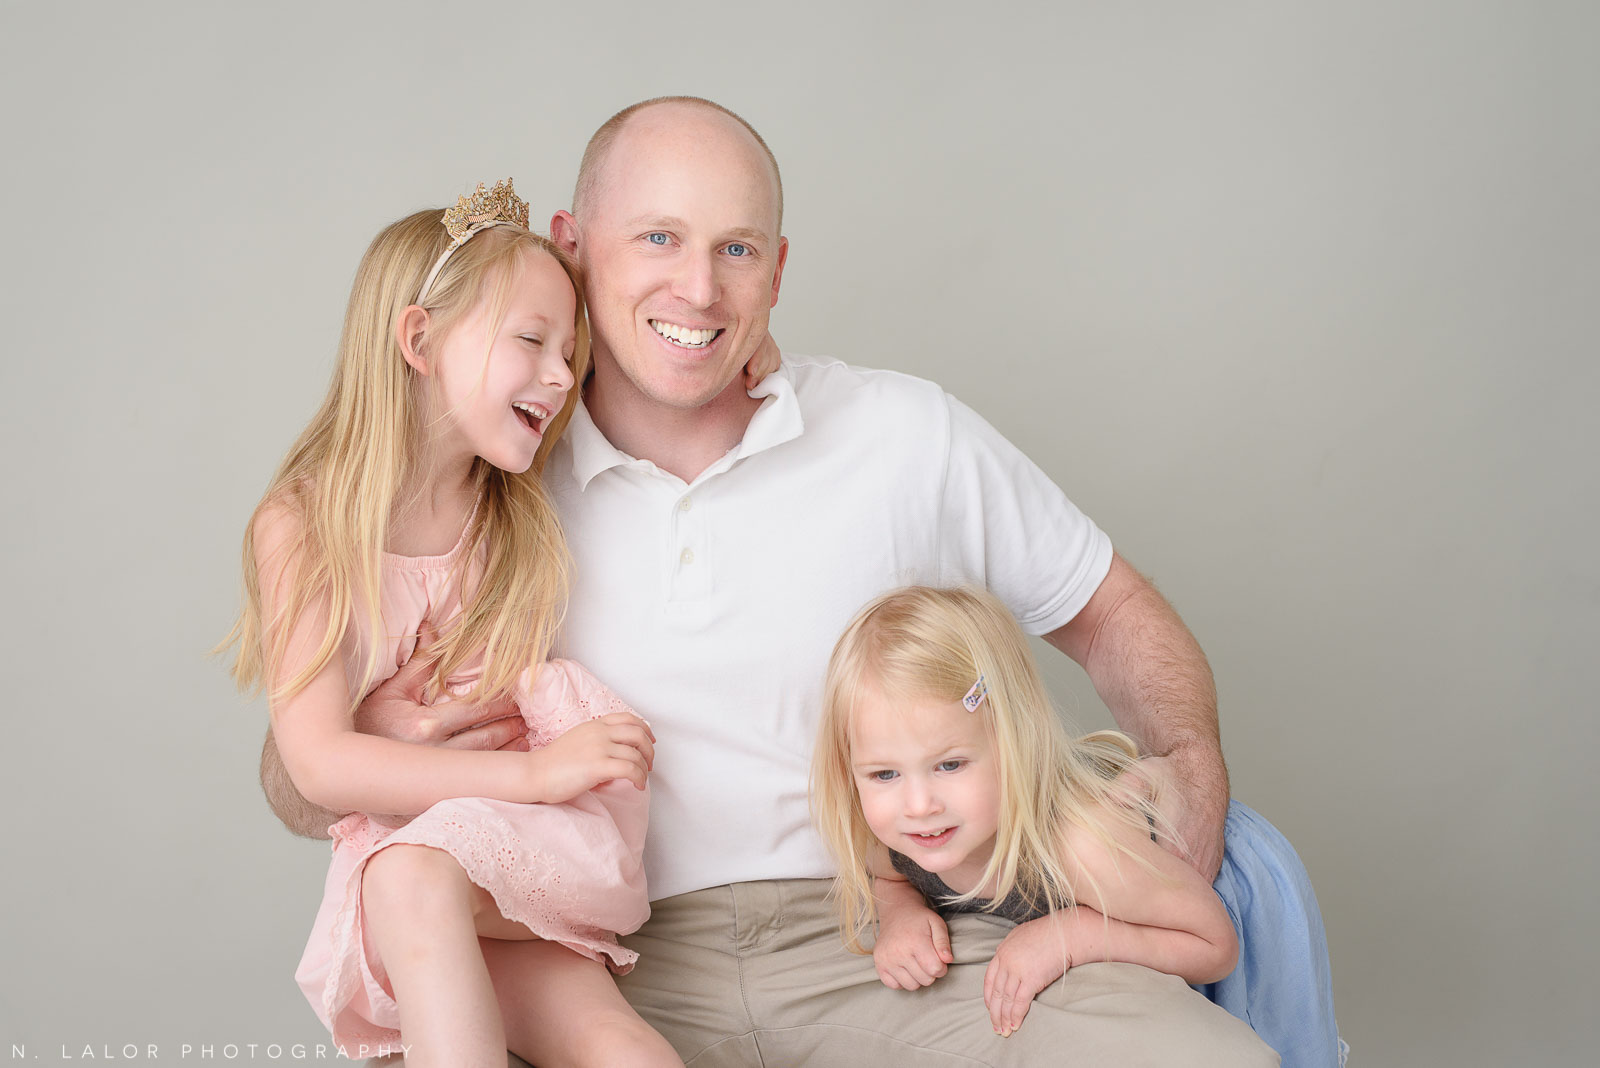 Dad with his daughters. Family photo session with N. Lalor Photography. Greenwich, Connecticut studio photographer.